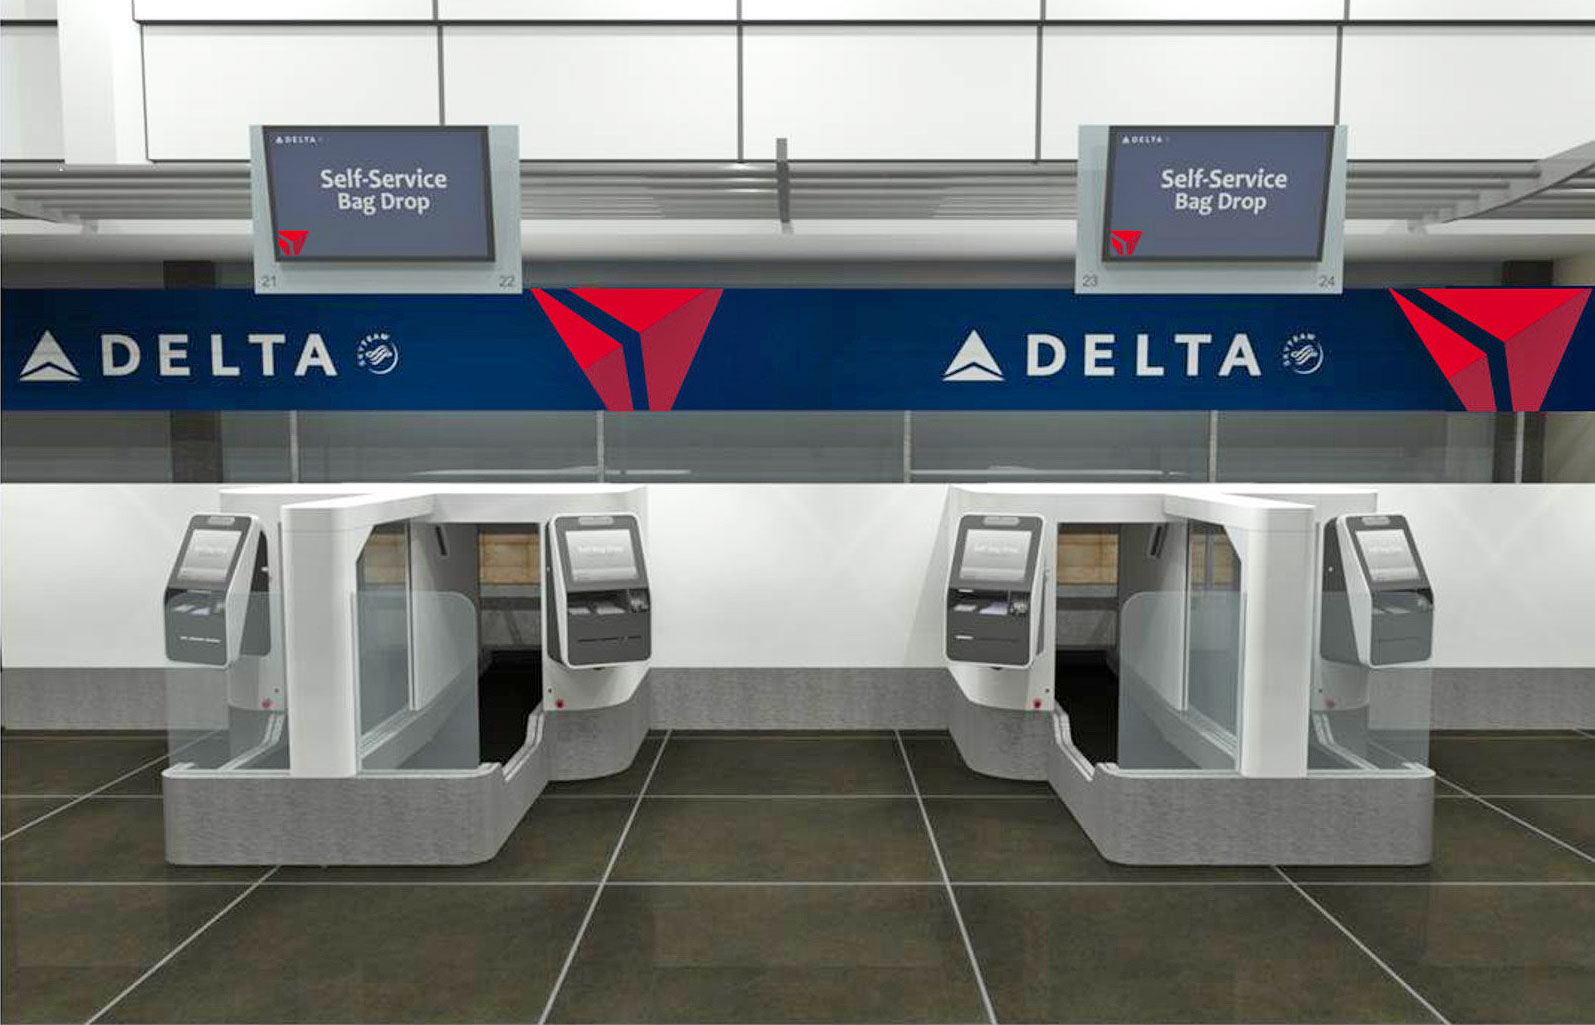 Delta Will Test Face Scanning For Checked Baggage This